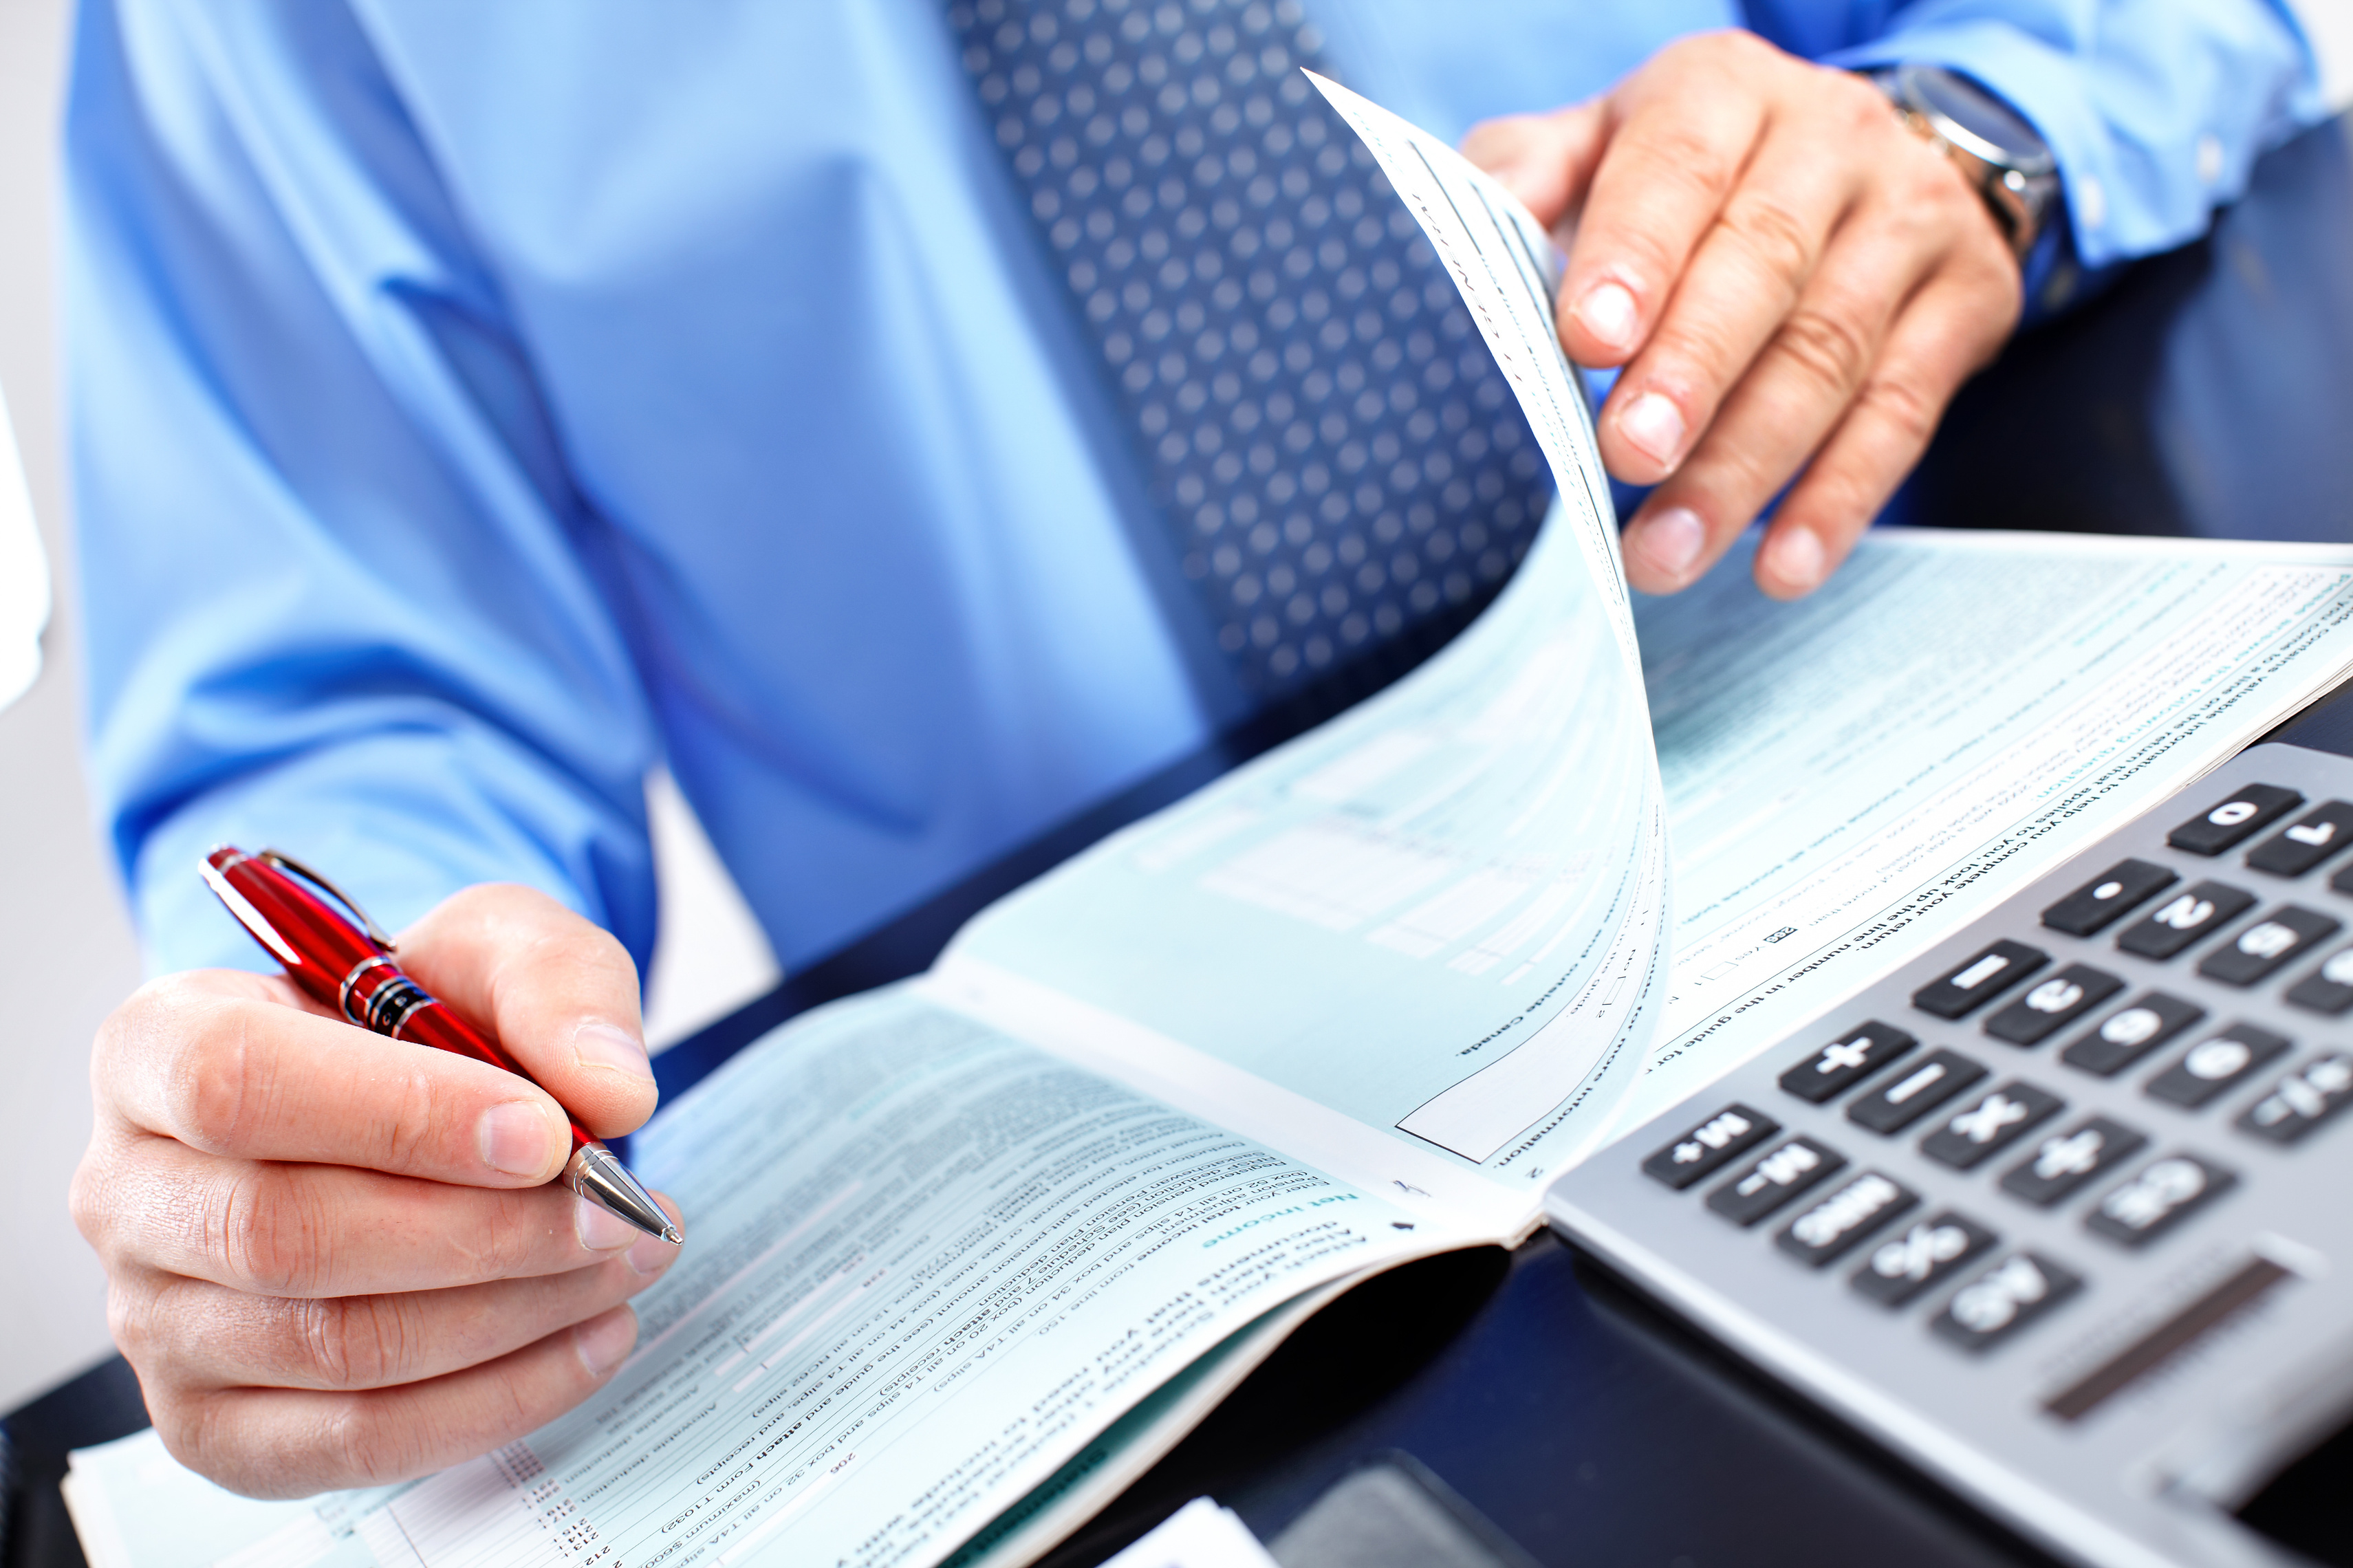 Business Accounting Services that Can Make Your Business More Profitable